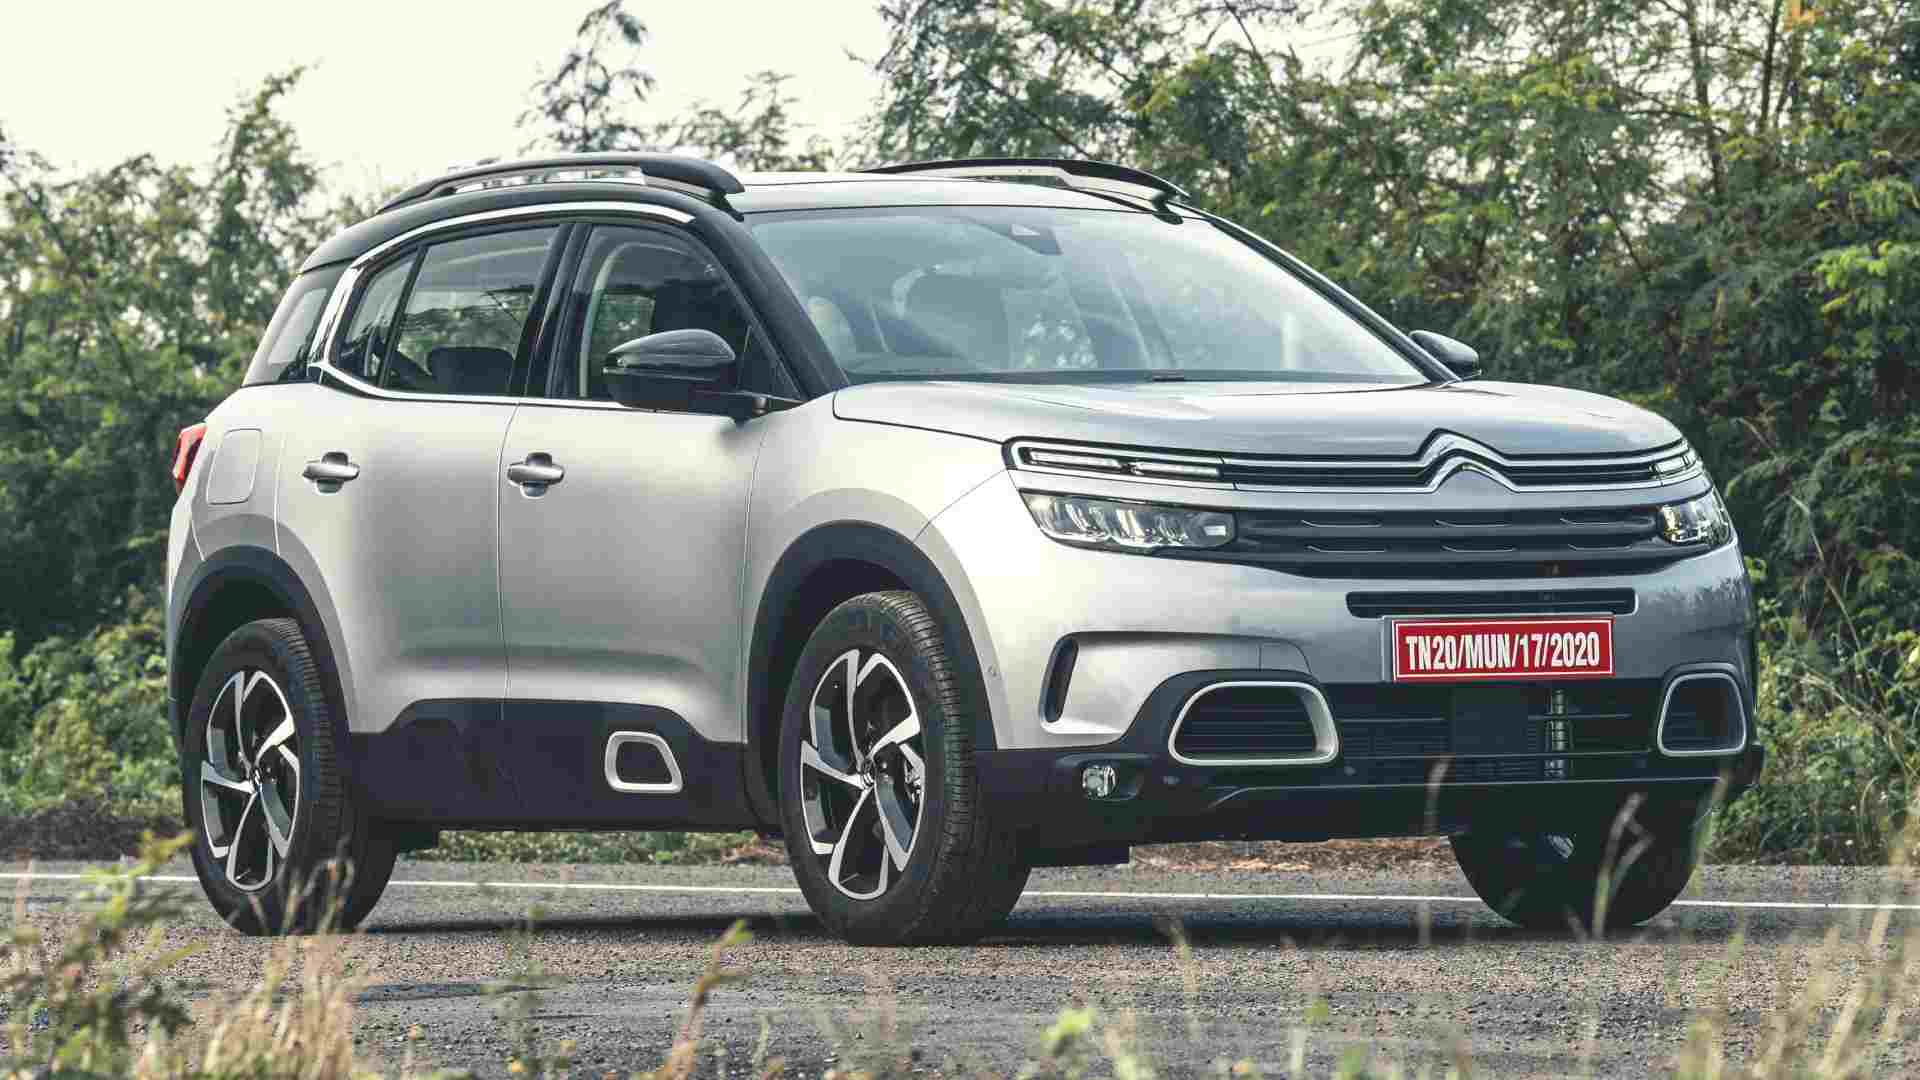 Citroen C5 Aircross India launch on 7 April, to be sold online and via 10 'La Maison' dealerships